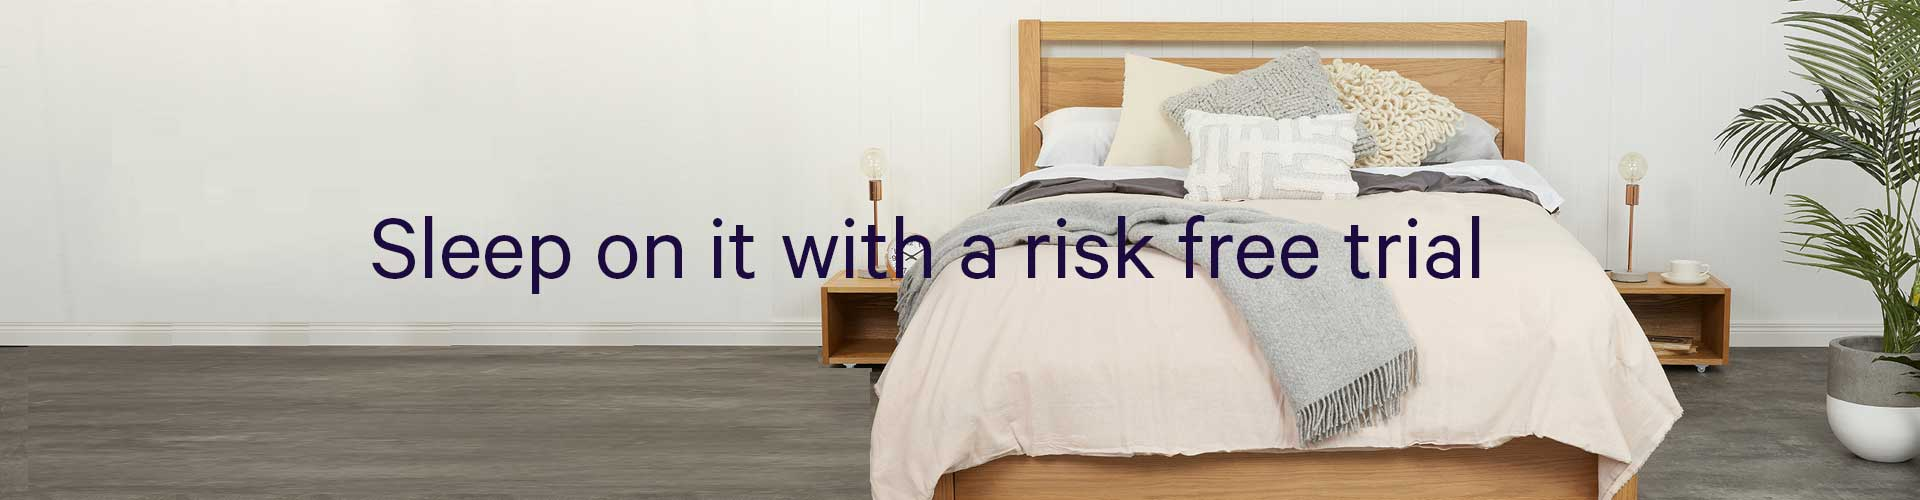 Buy mattress online with risk free trial - Springtek